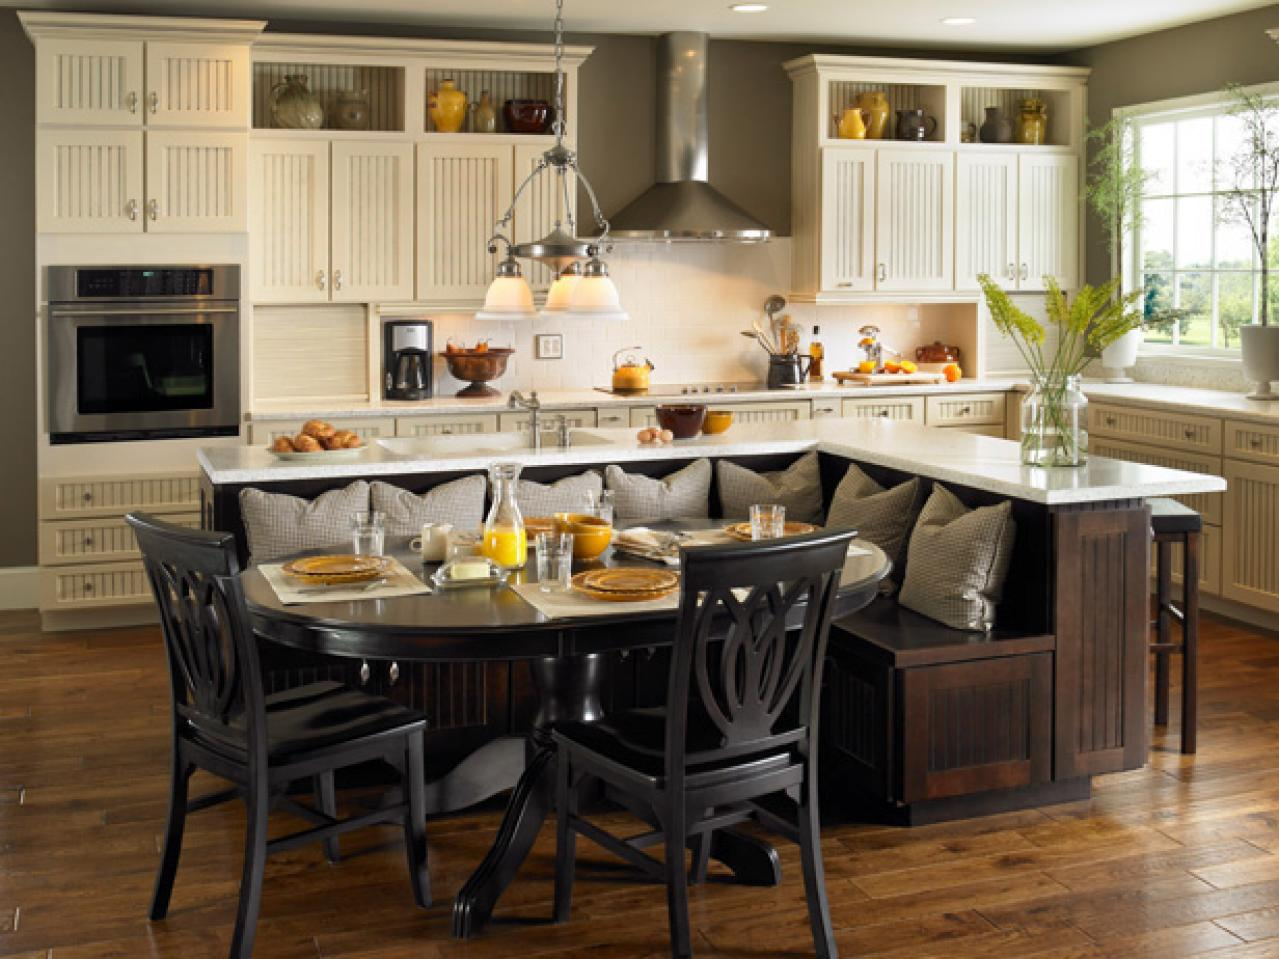 Kitchen Island Table Ideas and Options   HGTV Pictures  Kitchen Ideas